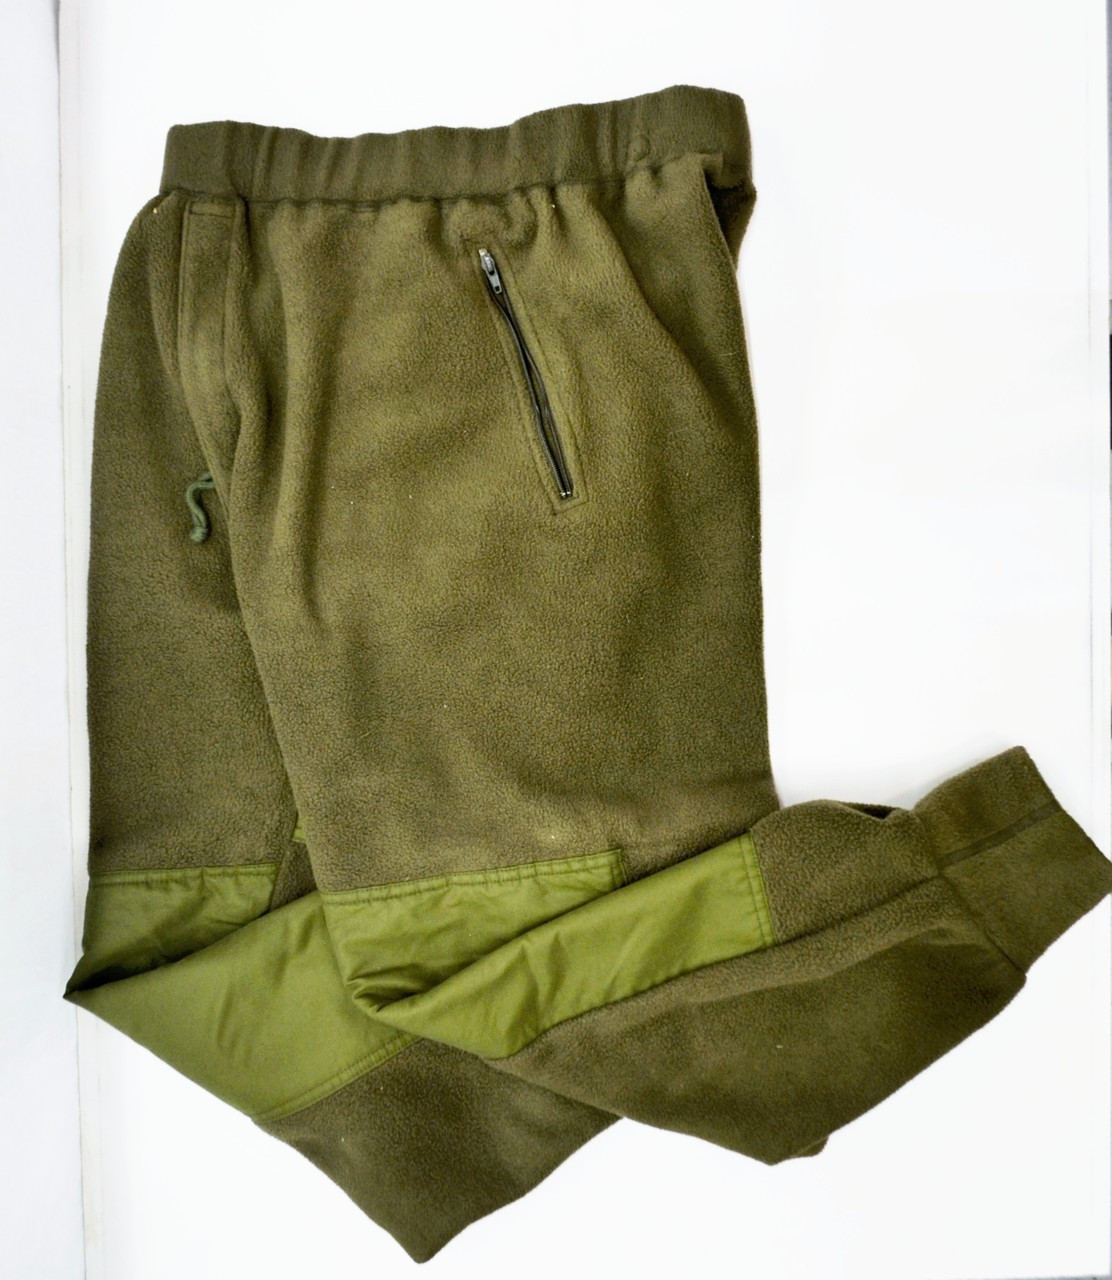 Canadian Military Issue Fleece Pants - Used